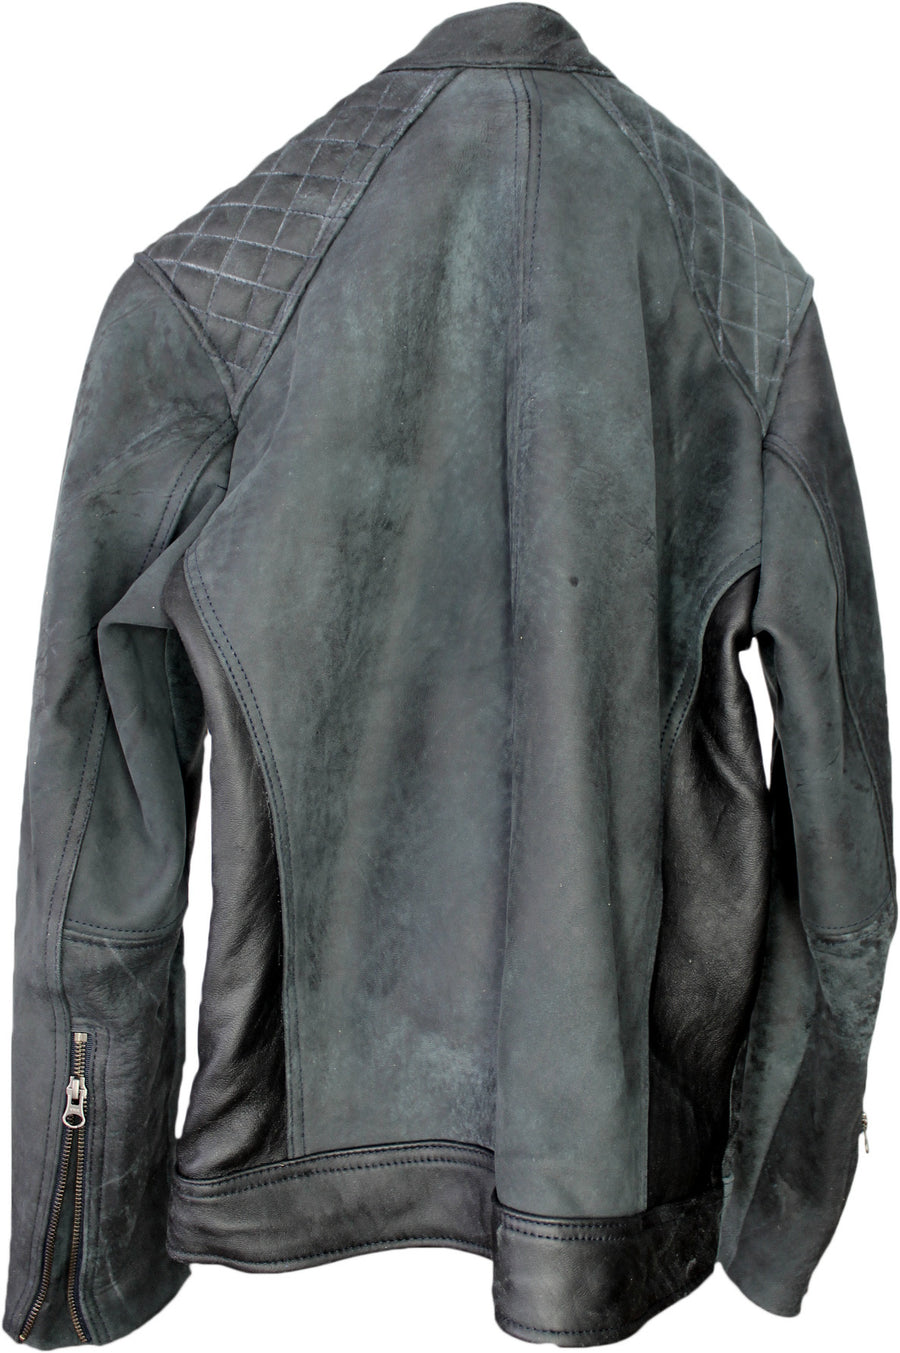 RACER D Leather Jacket in Distressed Gray -